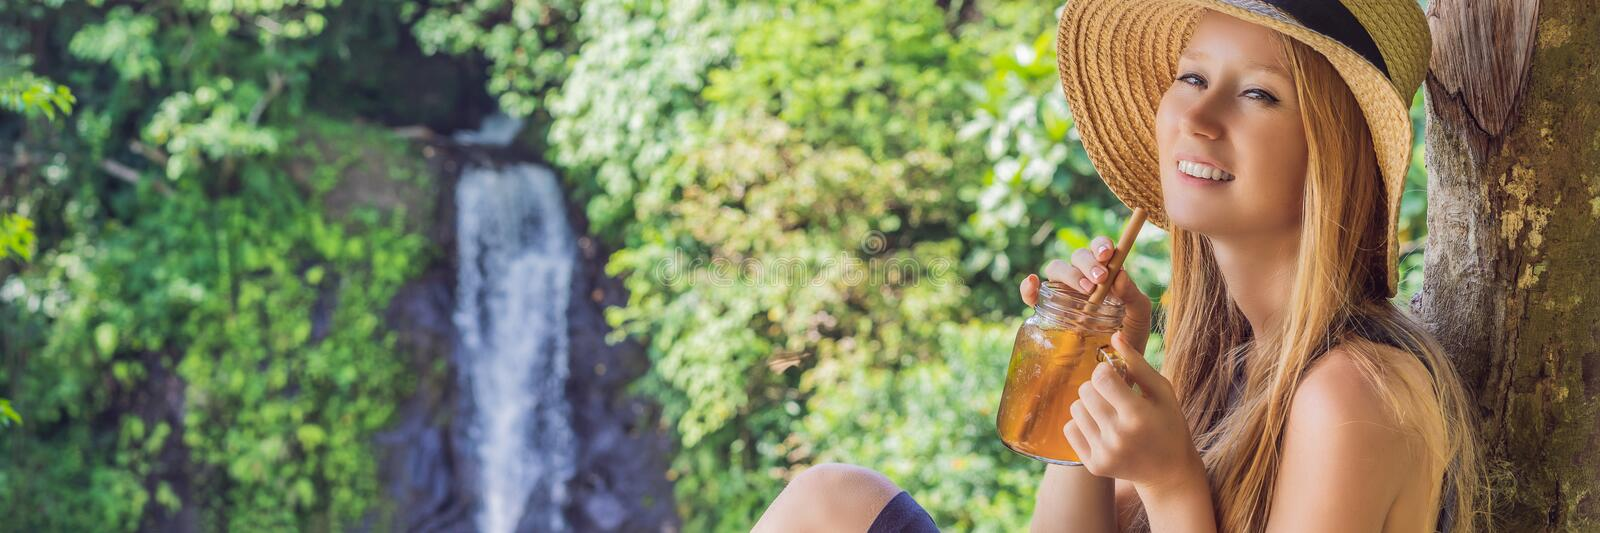 Closeup portrait image of a beautiful woman drinking ice tea with feeling happy in green nature and waterfall garden stock image